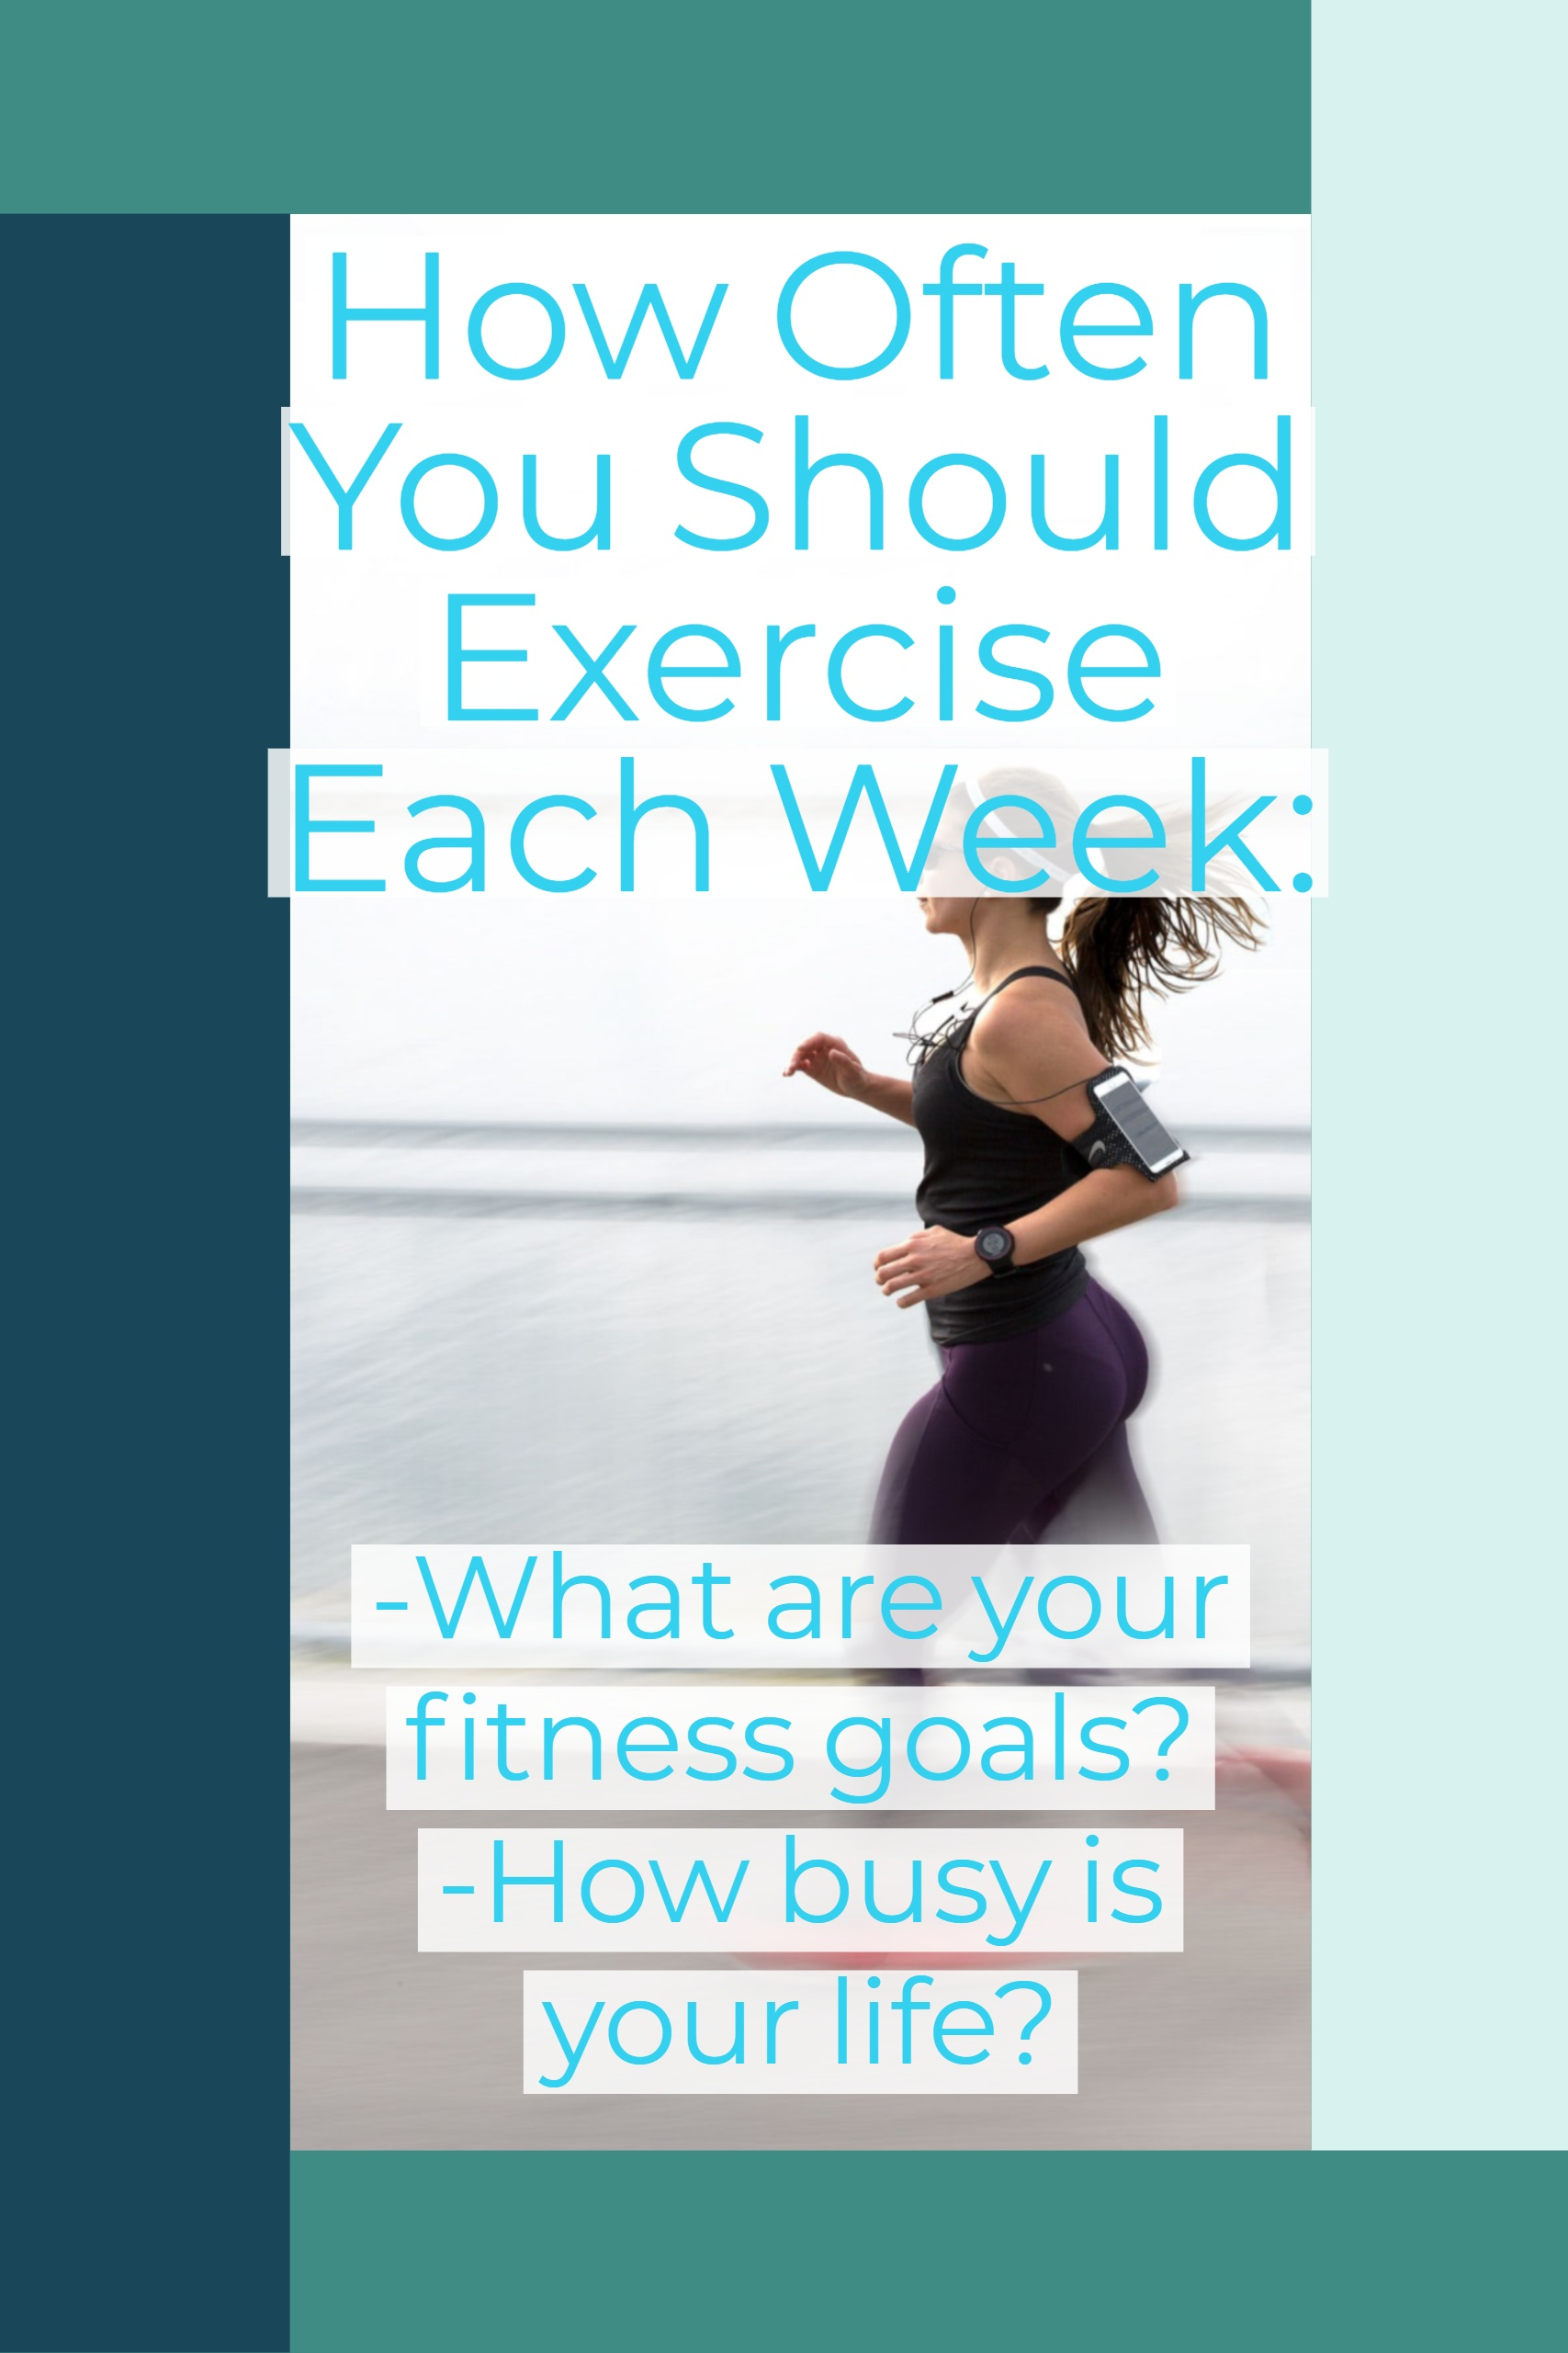 How often you should exercise each week depends on your fitness goals and your life schedule.